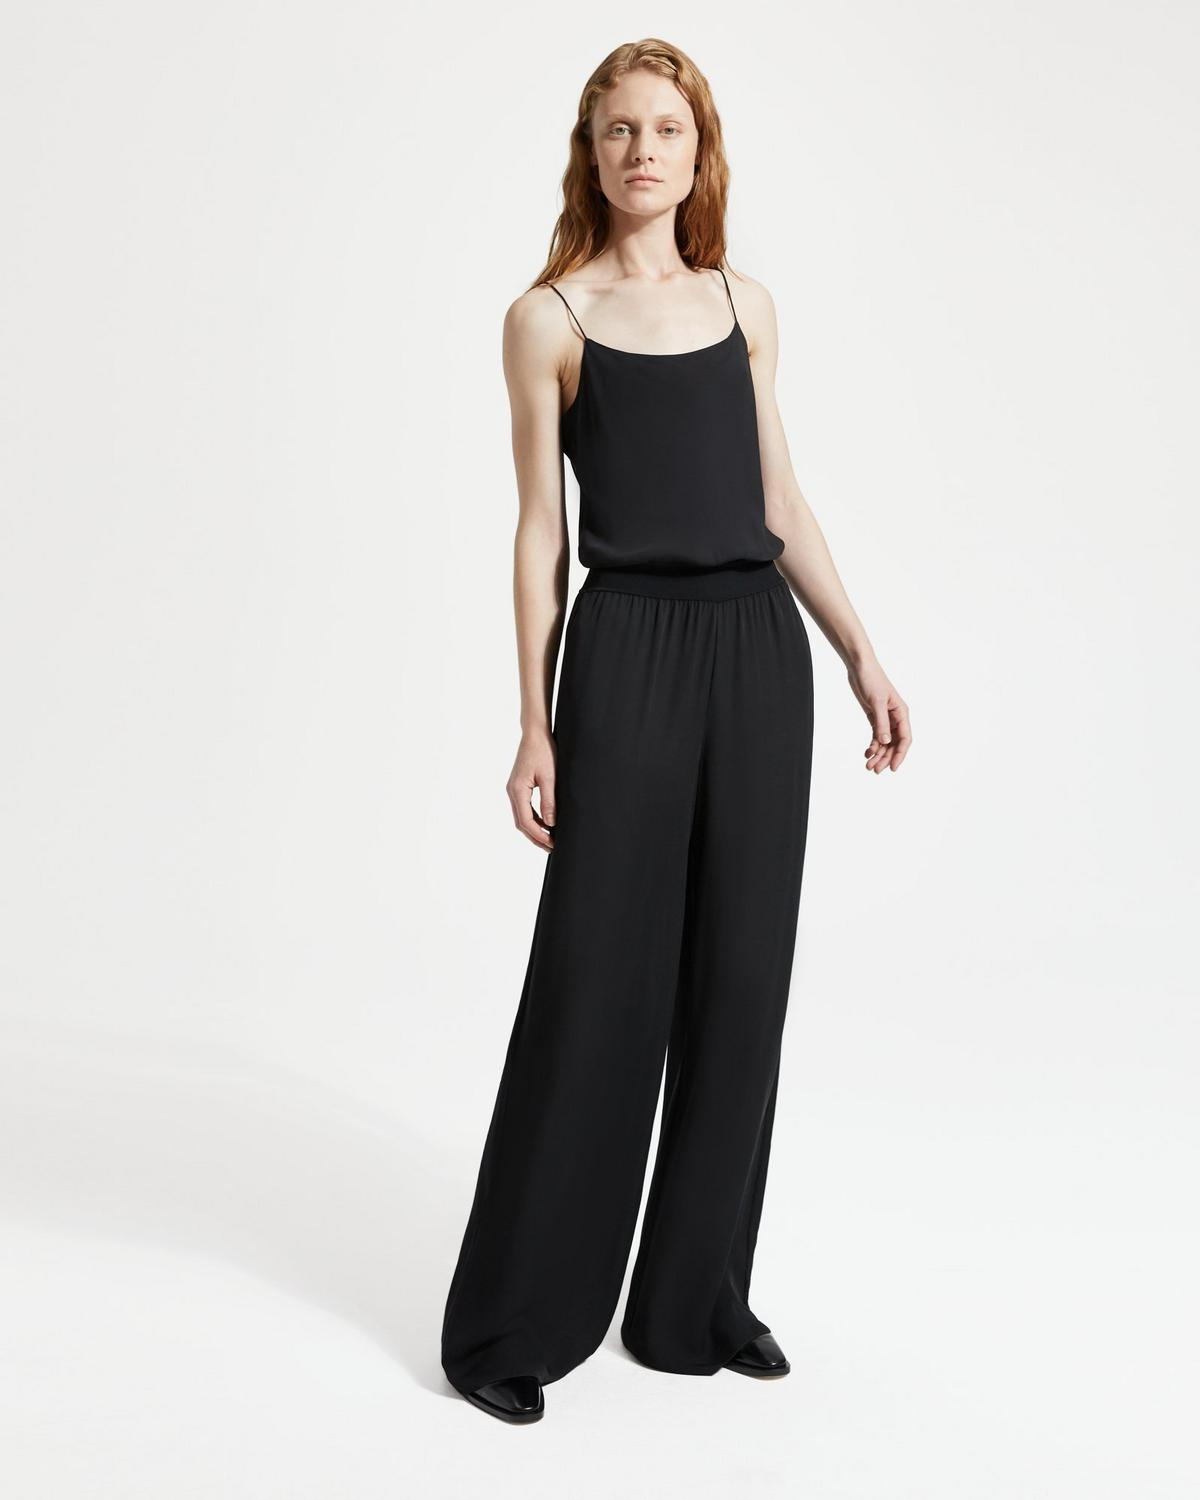 6557a19fa49e6 ... Silk Combo Ribbed-Waist Jumpsuit 2 - click to view larger image